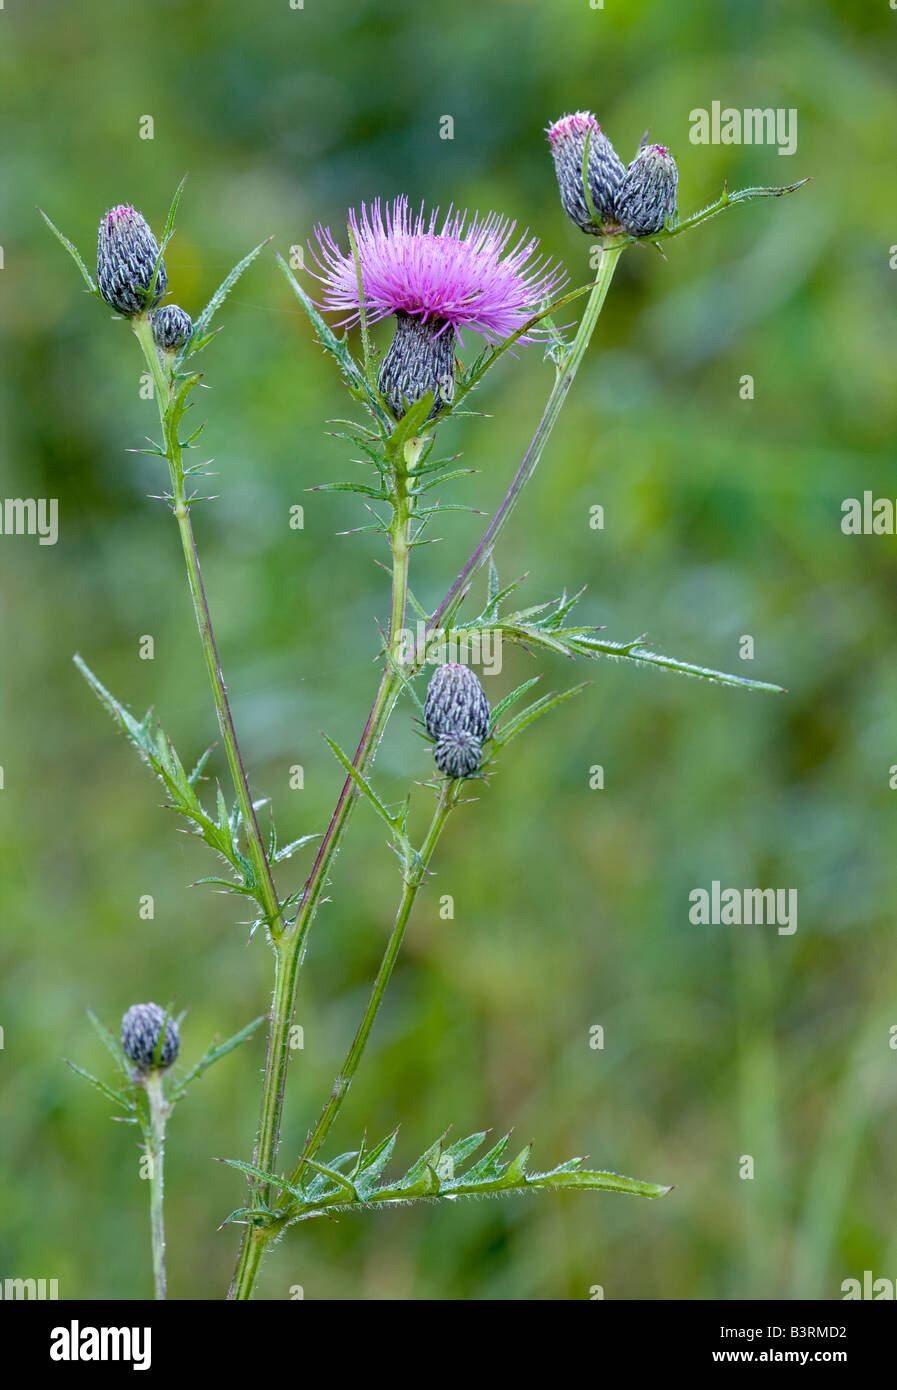 Fen thistle or swamp thistle, Cirsium muticum, Iowa Stock Photo